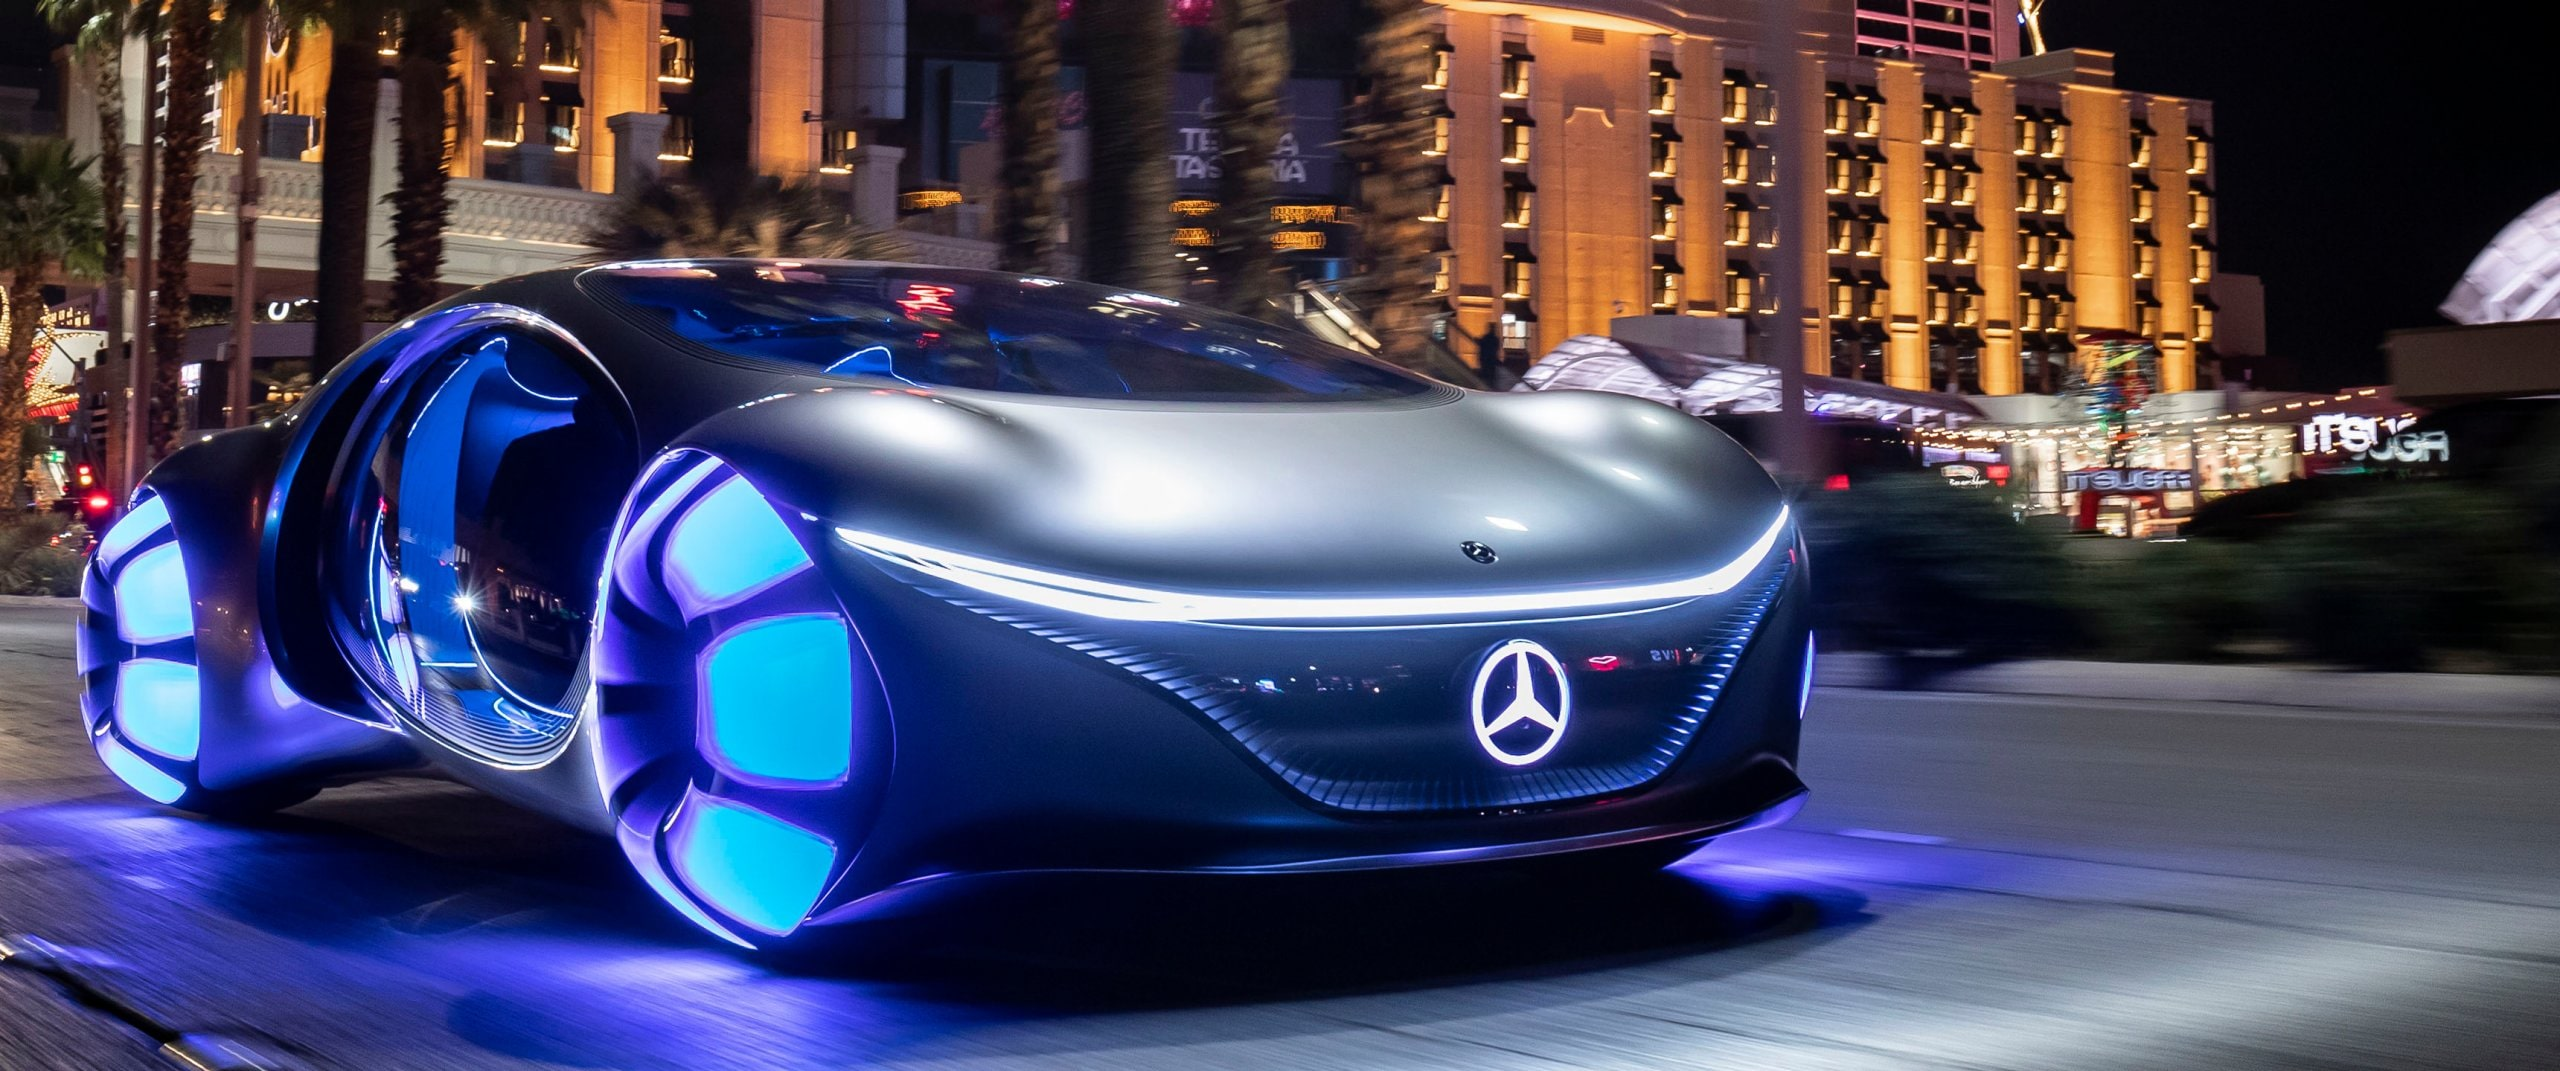 The front of the new Mercedes-Benz VISION AVTR concept car.